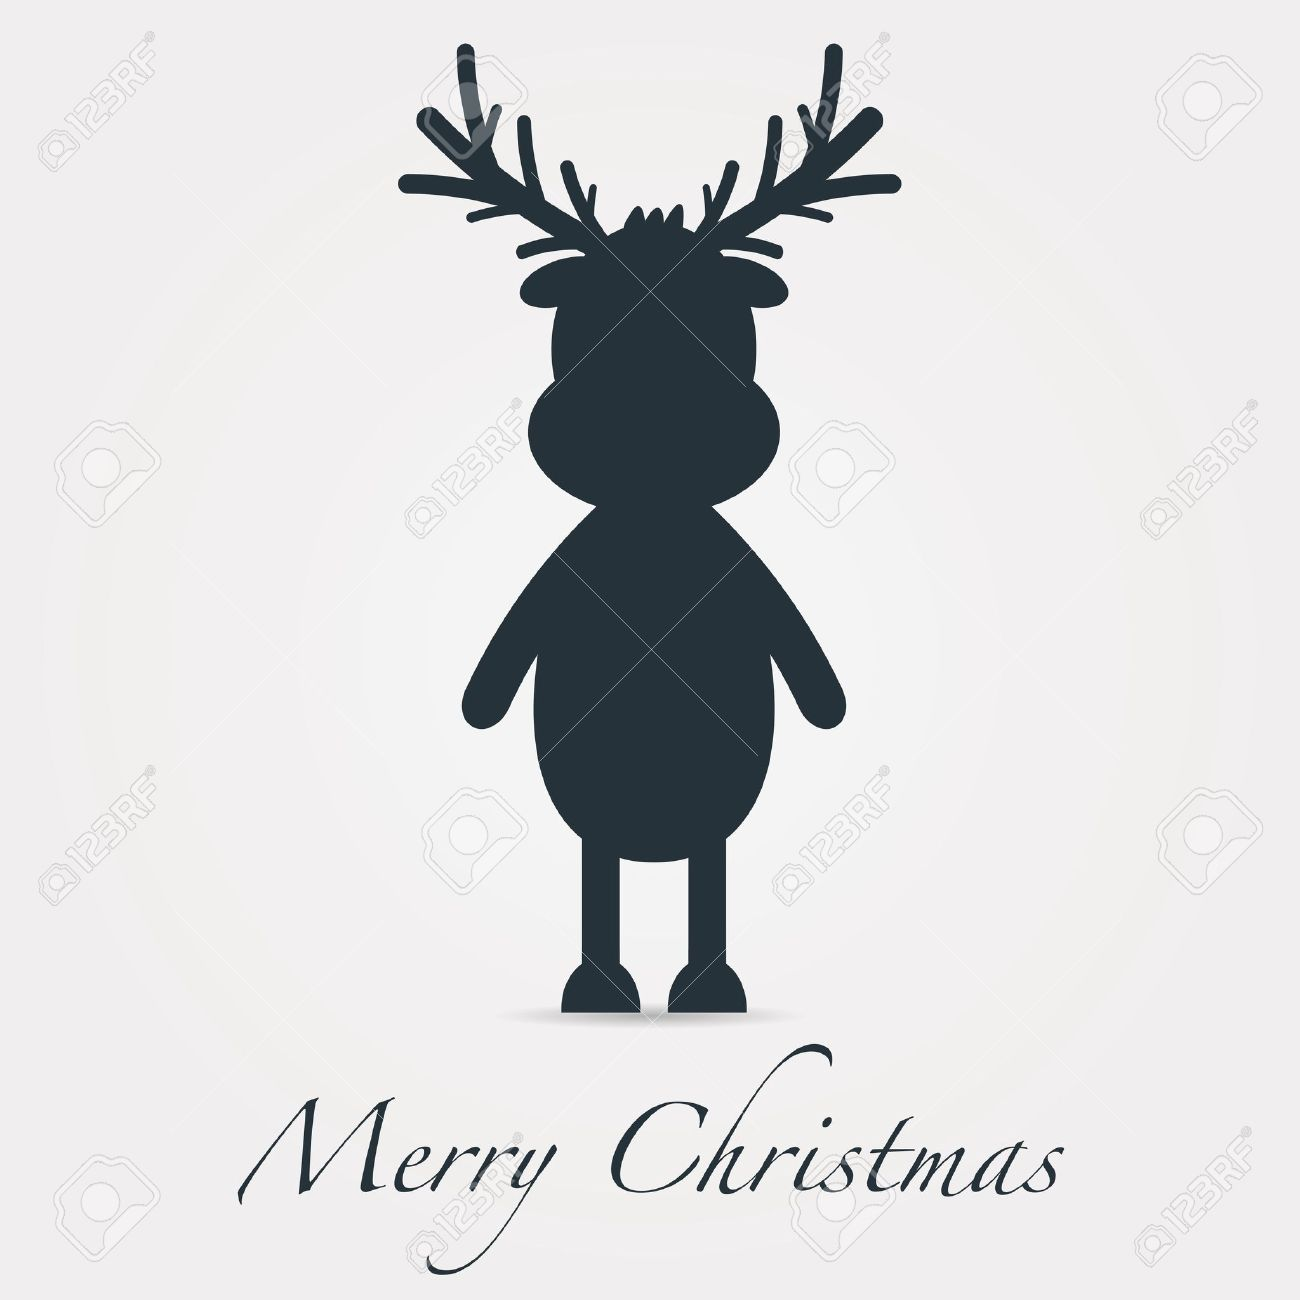 Rudolph Reindeer Silhouette Black Merry Christmas Text Stock Photo ...